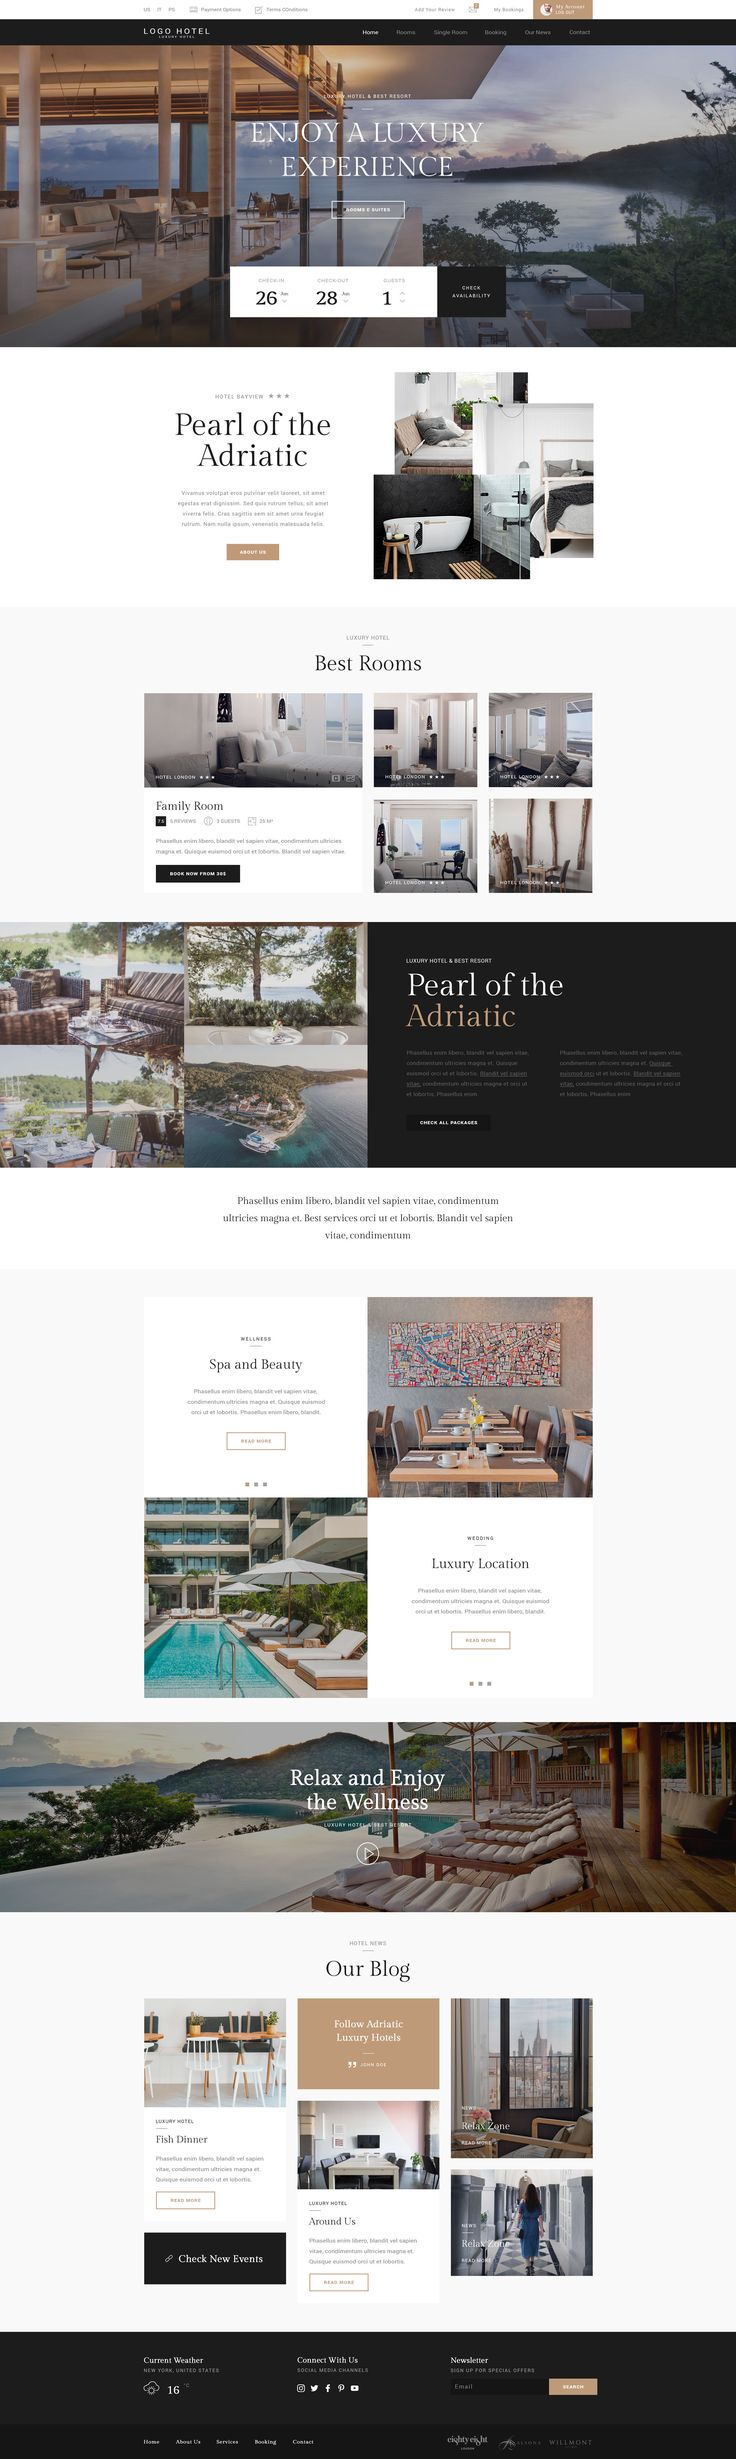 HOTEL PSD TEMPLATE Hotel Psd Template is a template designed for hotel, motel, villas , guesthouse or other tourism business that want to show all rooms in the better way possible. Each room has a ...